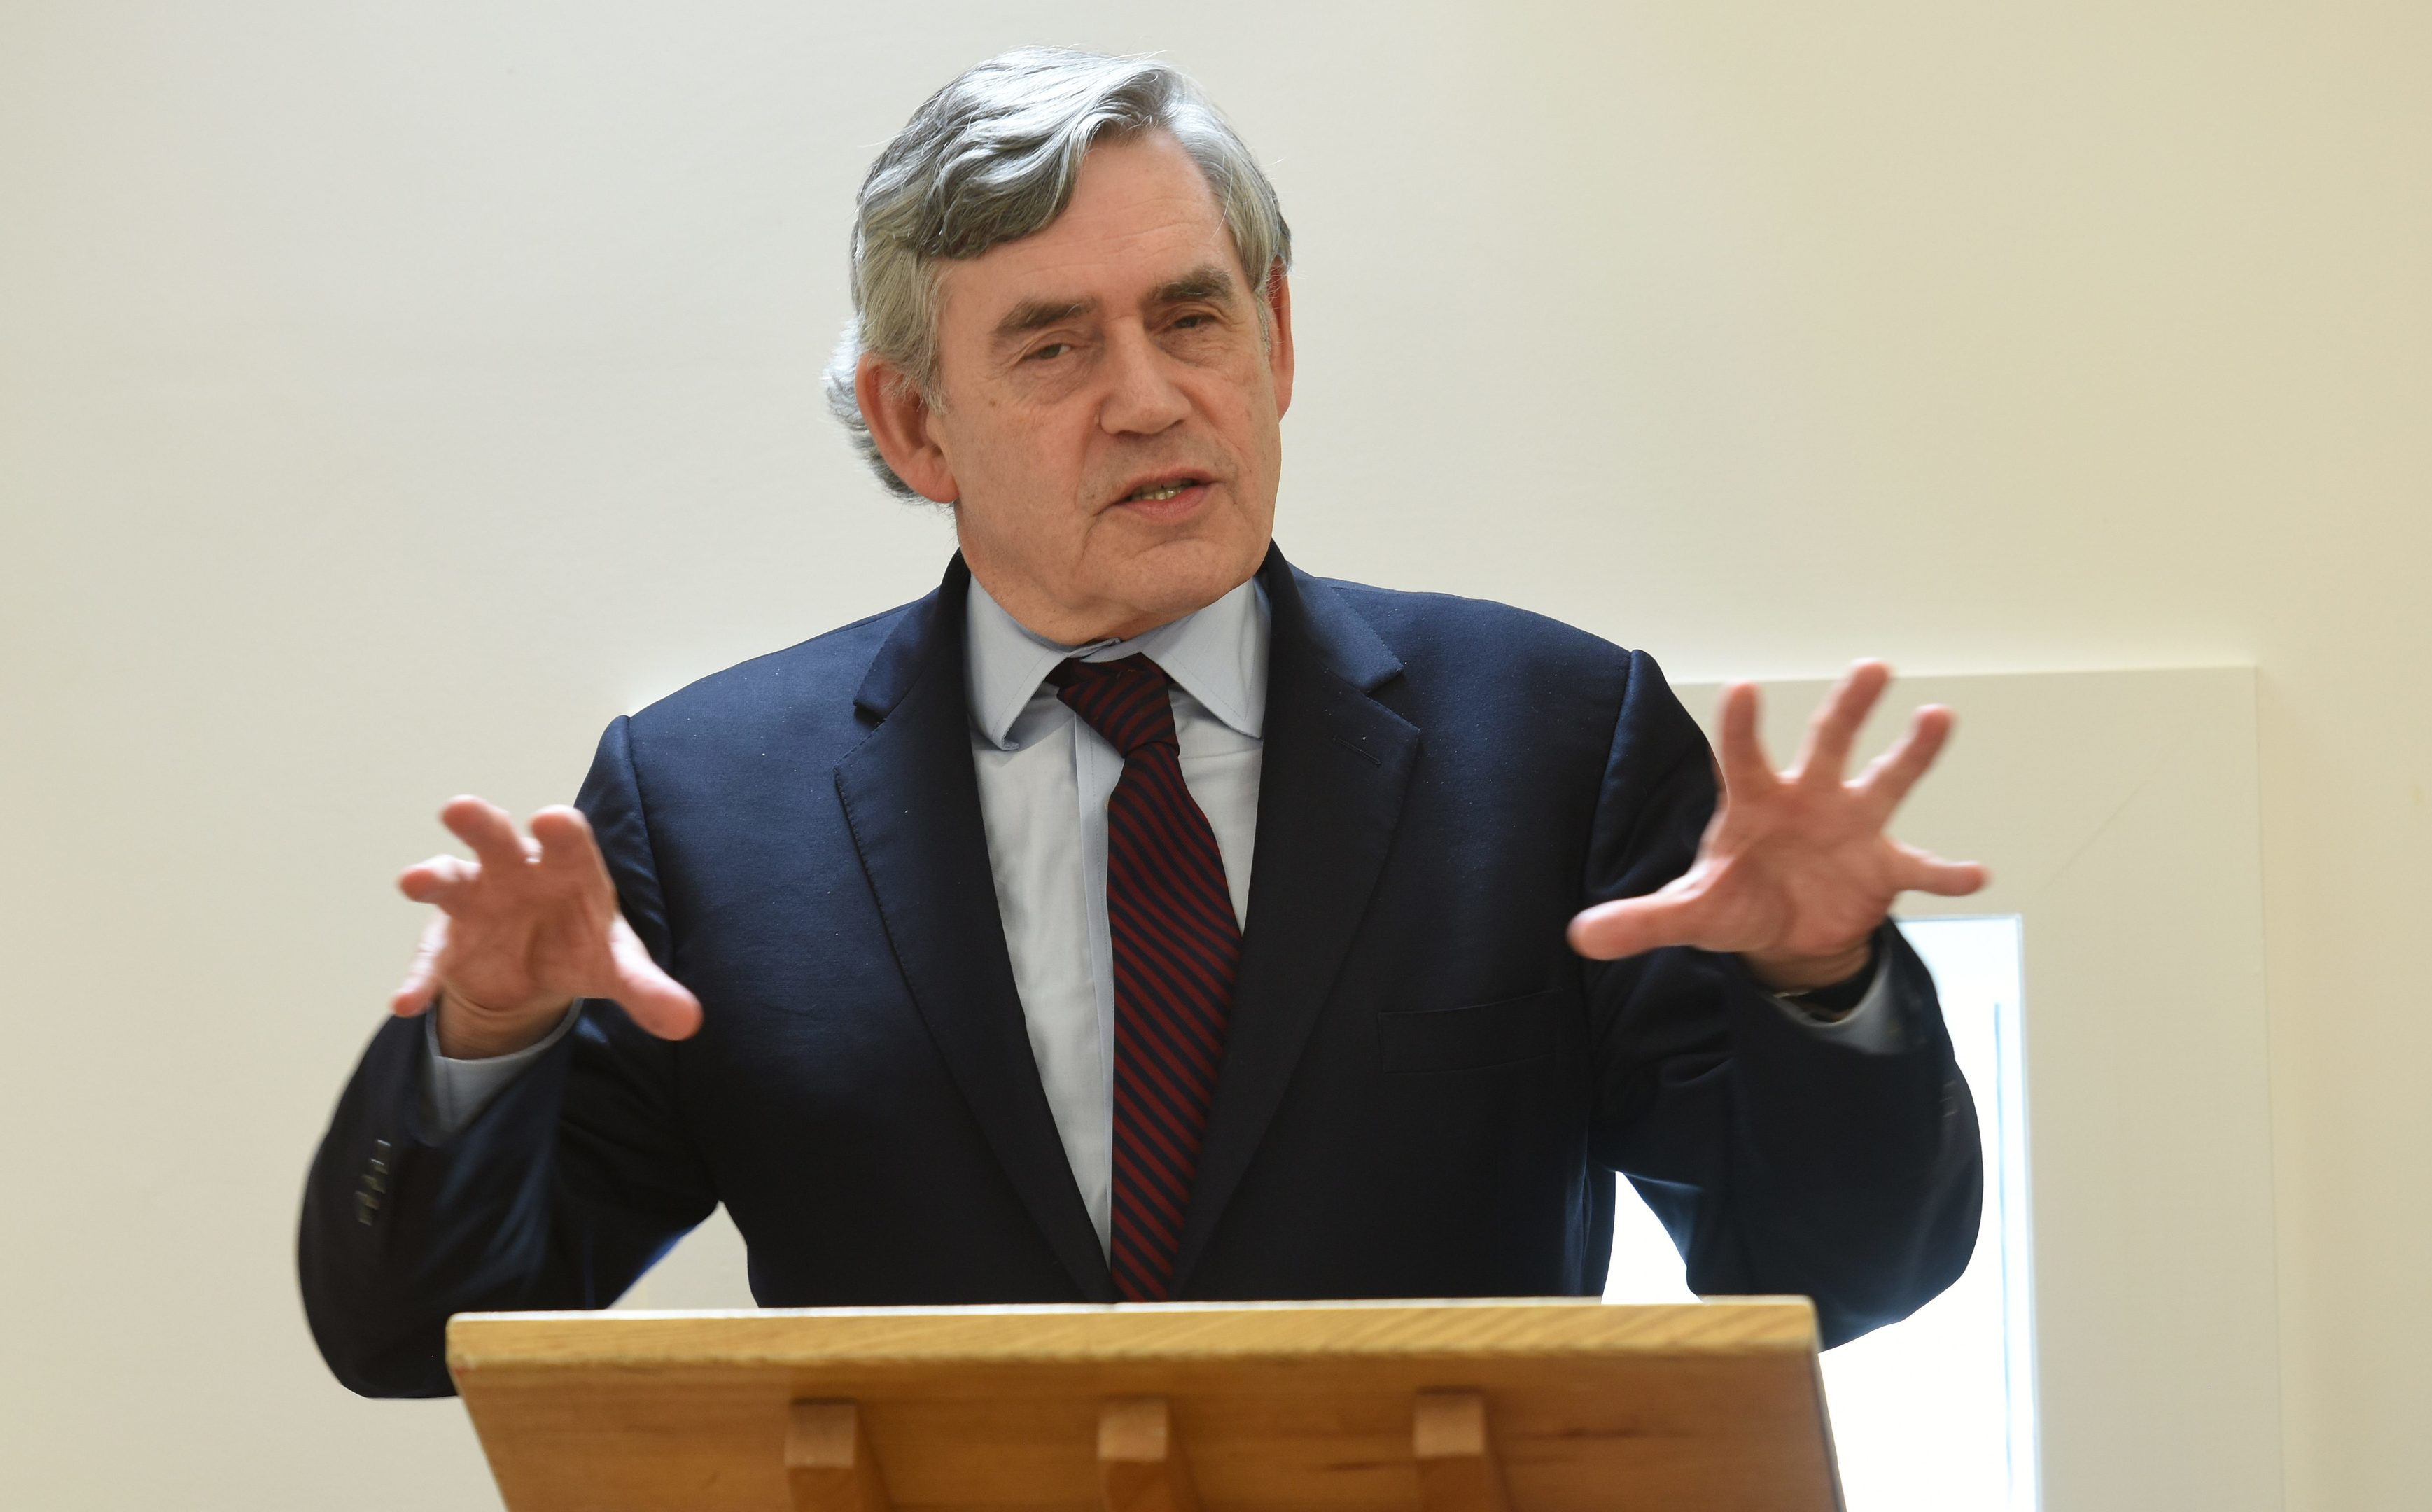 Gordon Brown marks the completion of the Adam Smith Heritage Centre in Kirkcaldy